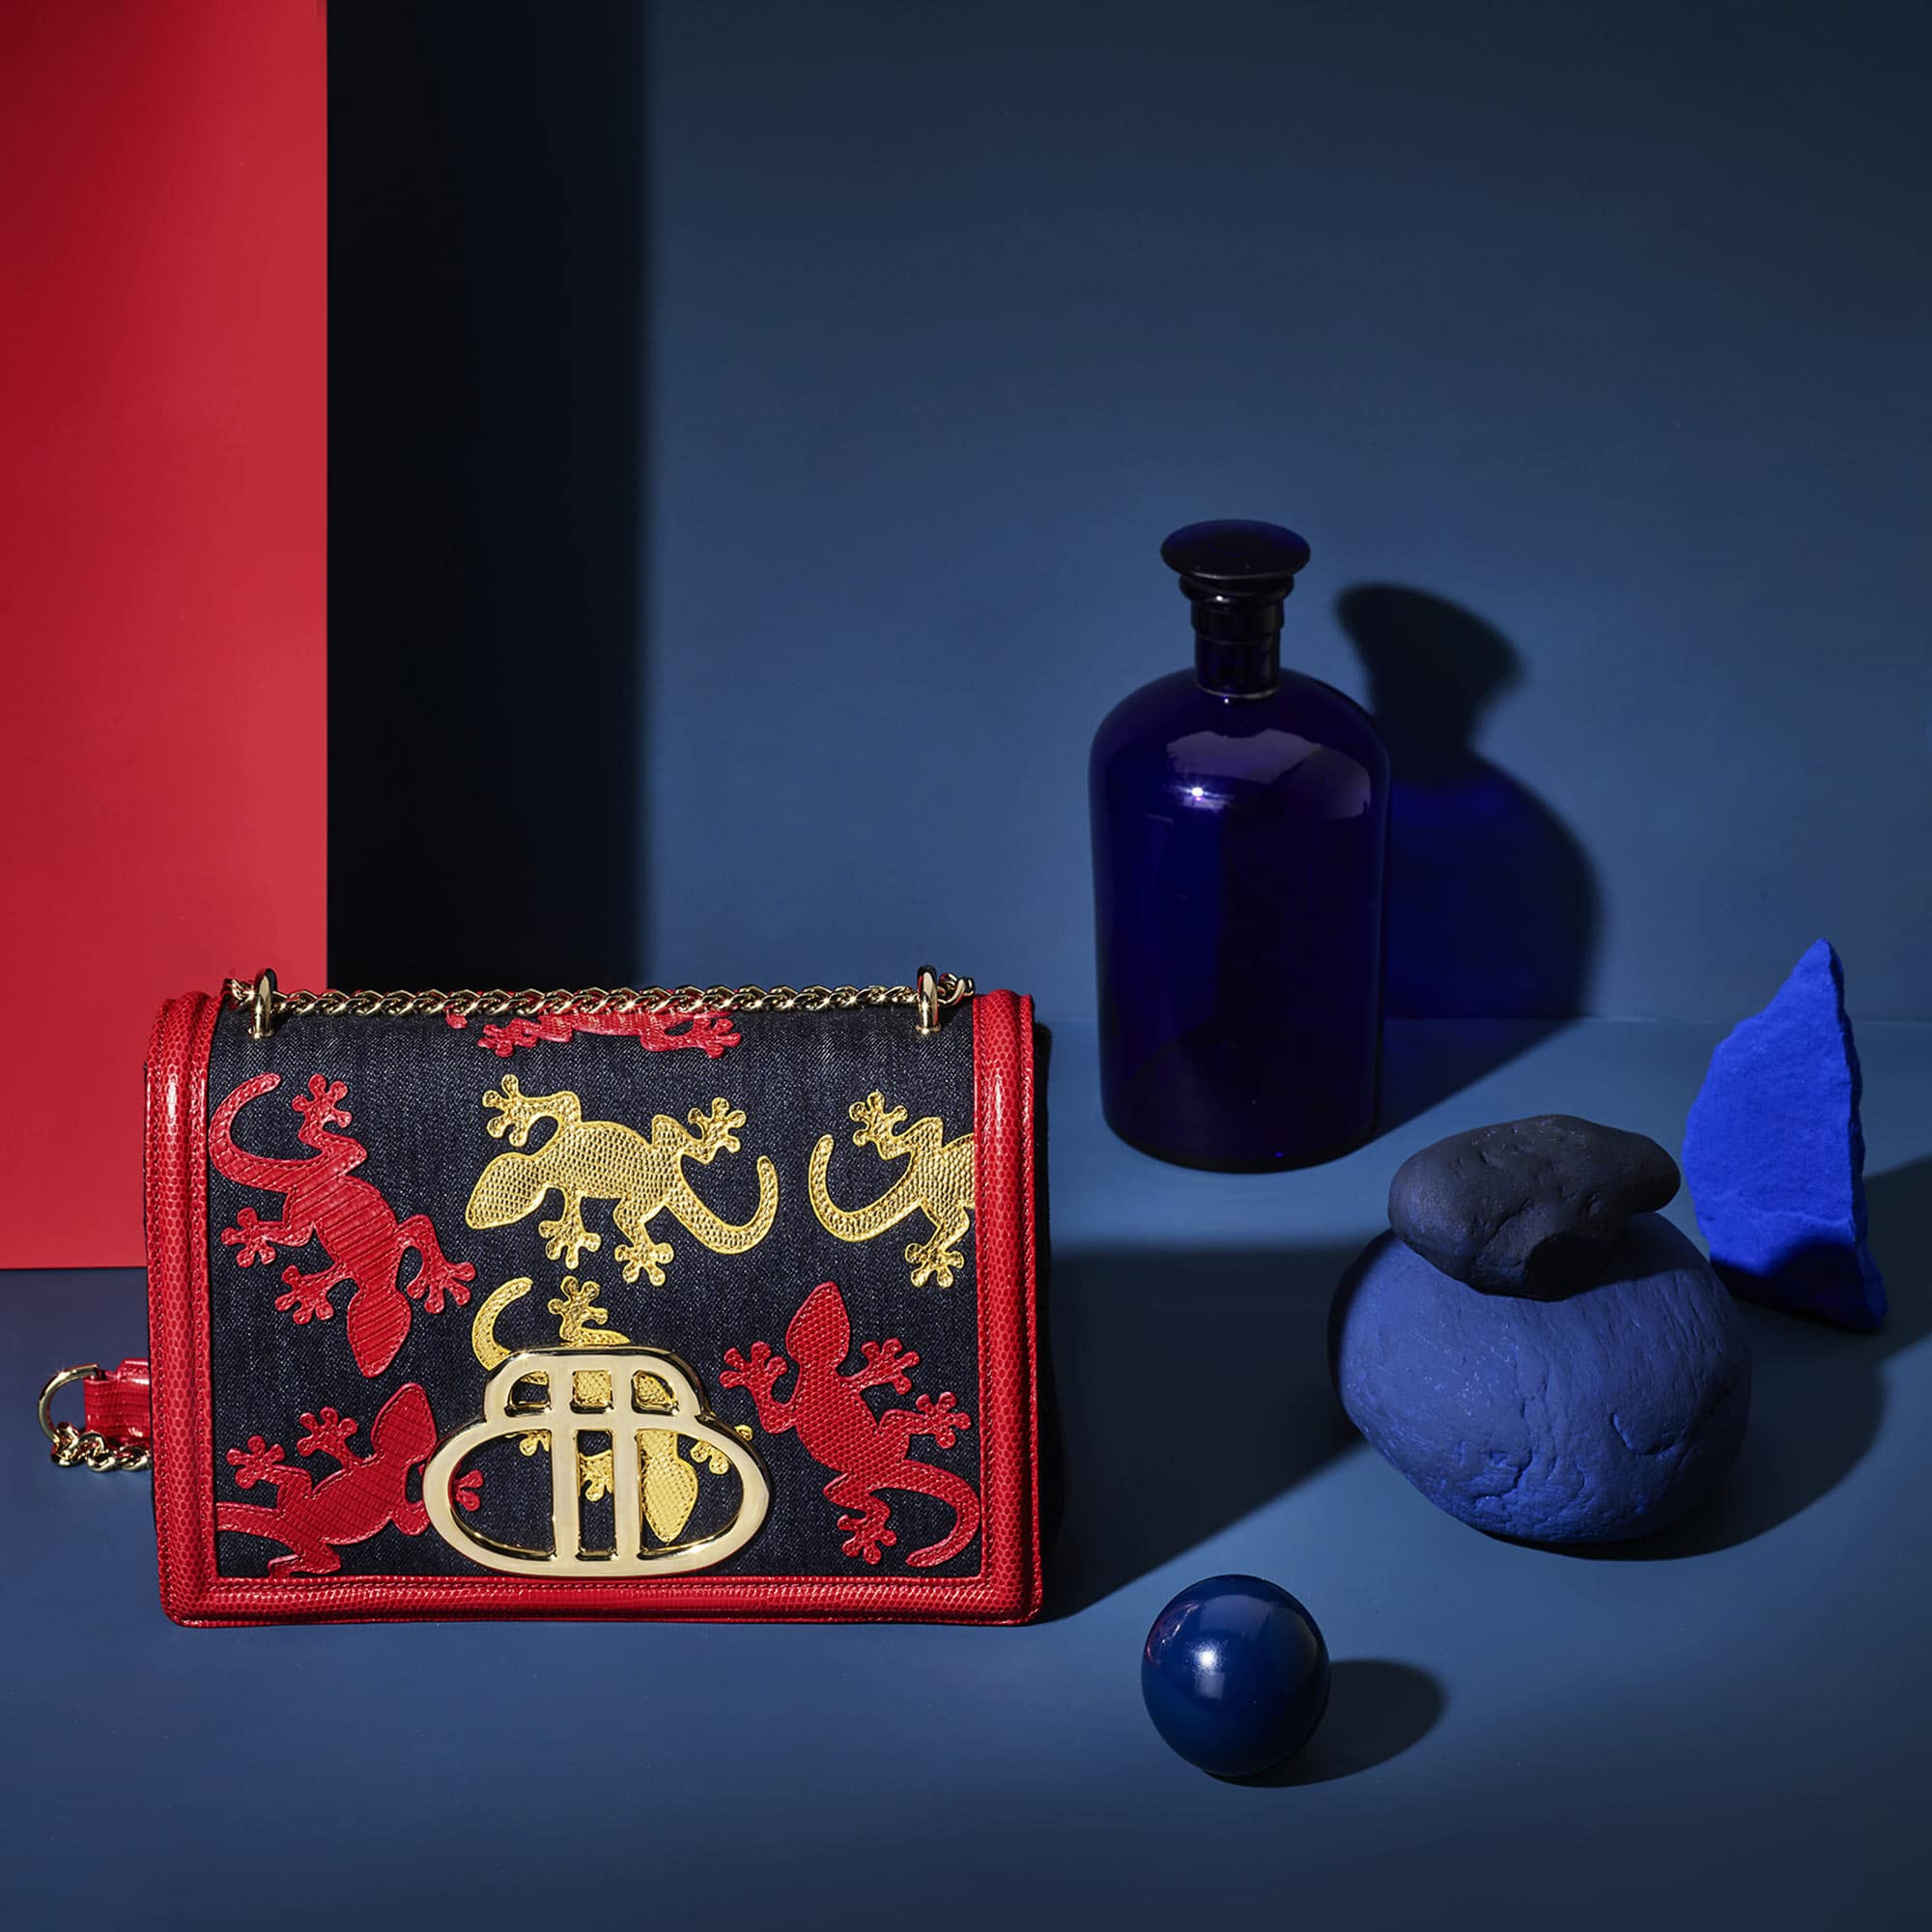 Geko Bag Red Blue Still Life Shot for Barchi by Fotografando